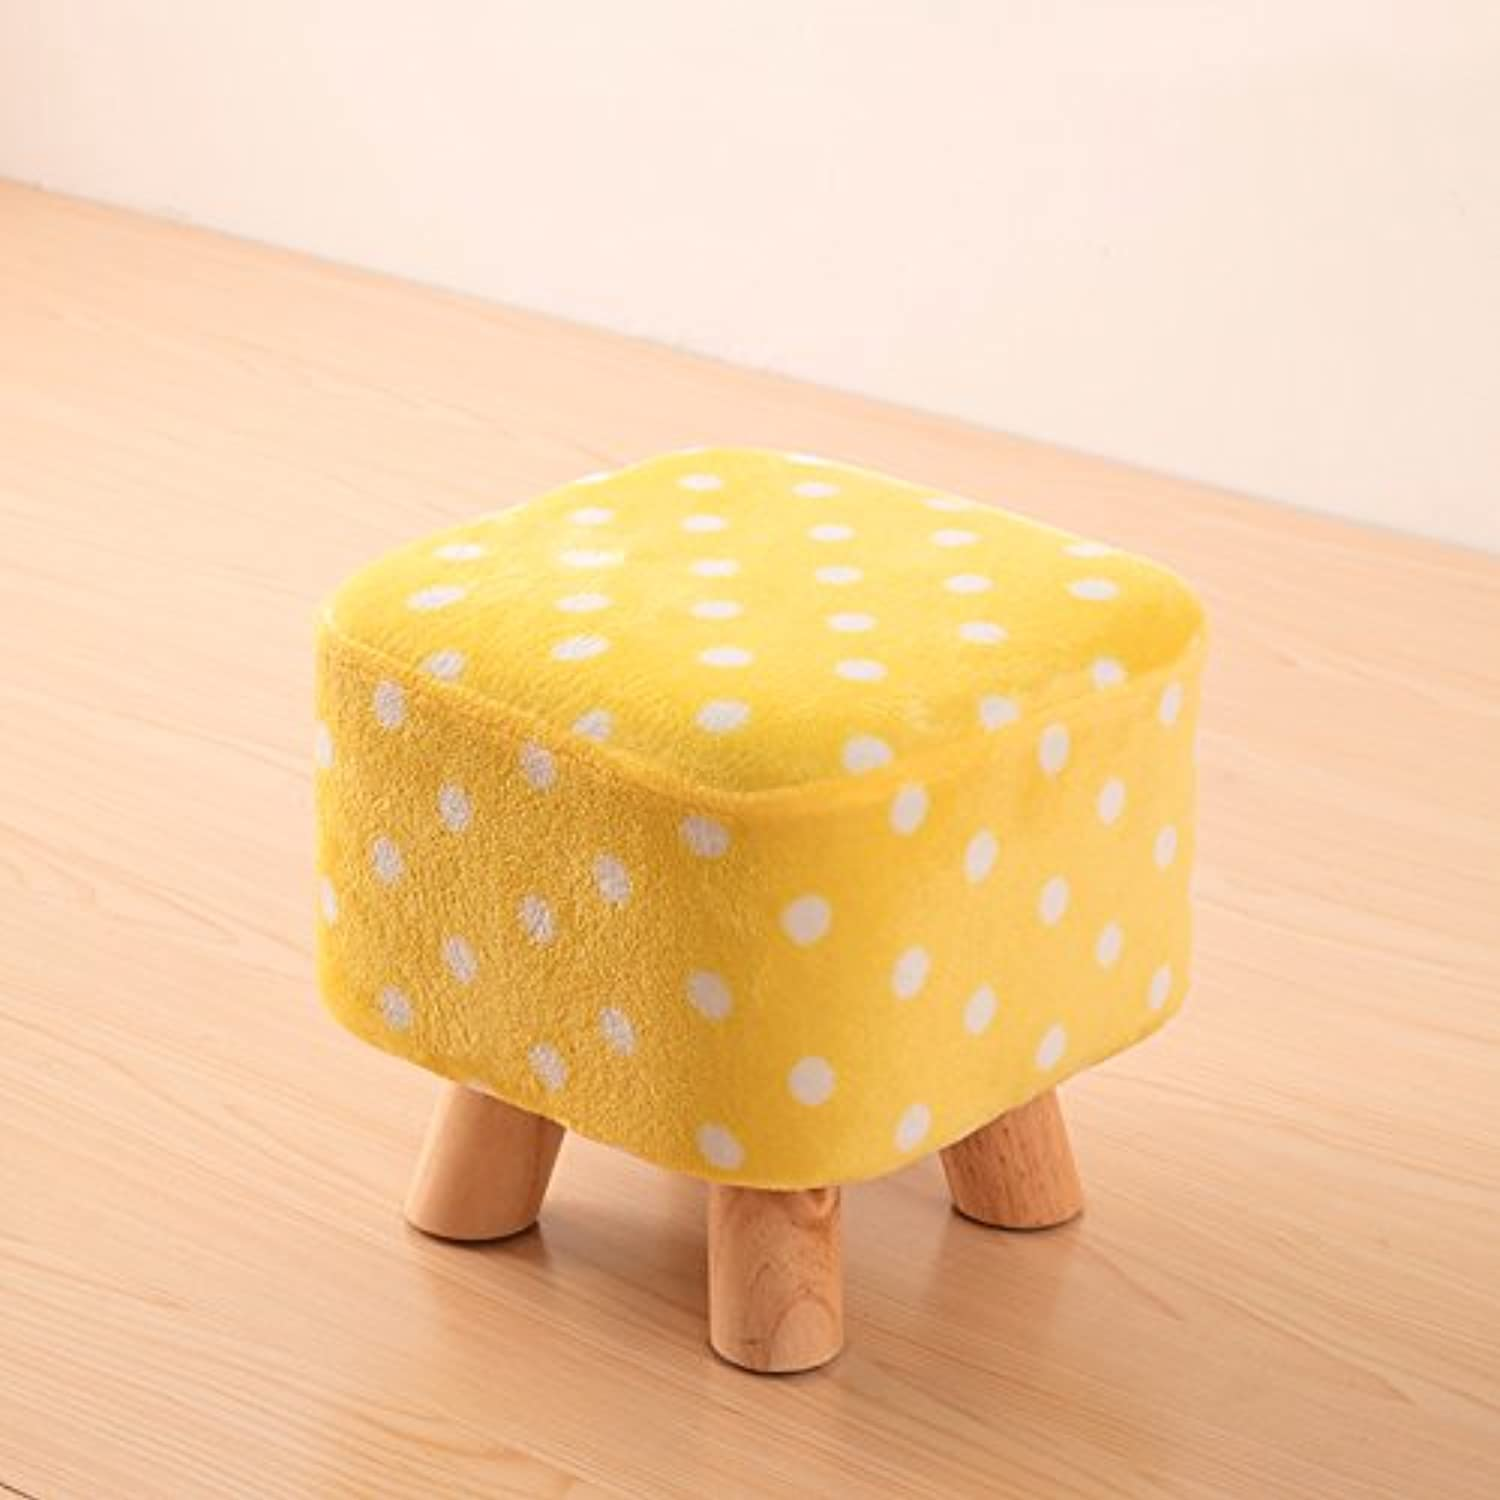 Dana Carrie Solid Wood on a Low stool for shoes is Fashionable to wear shoes That Creative Party Chair Fabrics stool Sofa Chair Coffee Table Bench Home, Yellow White Point